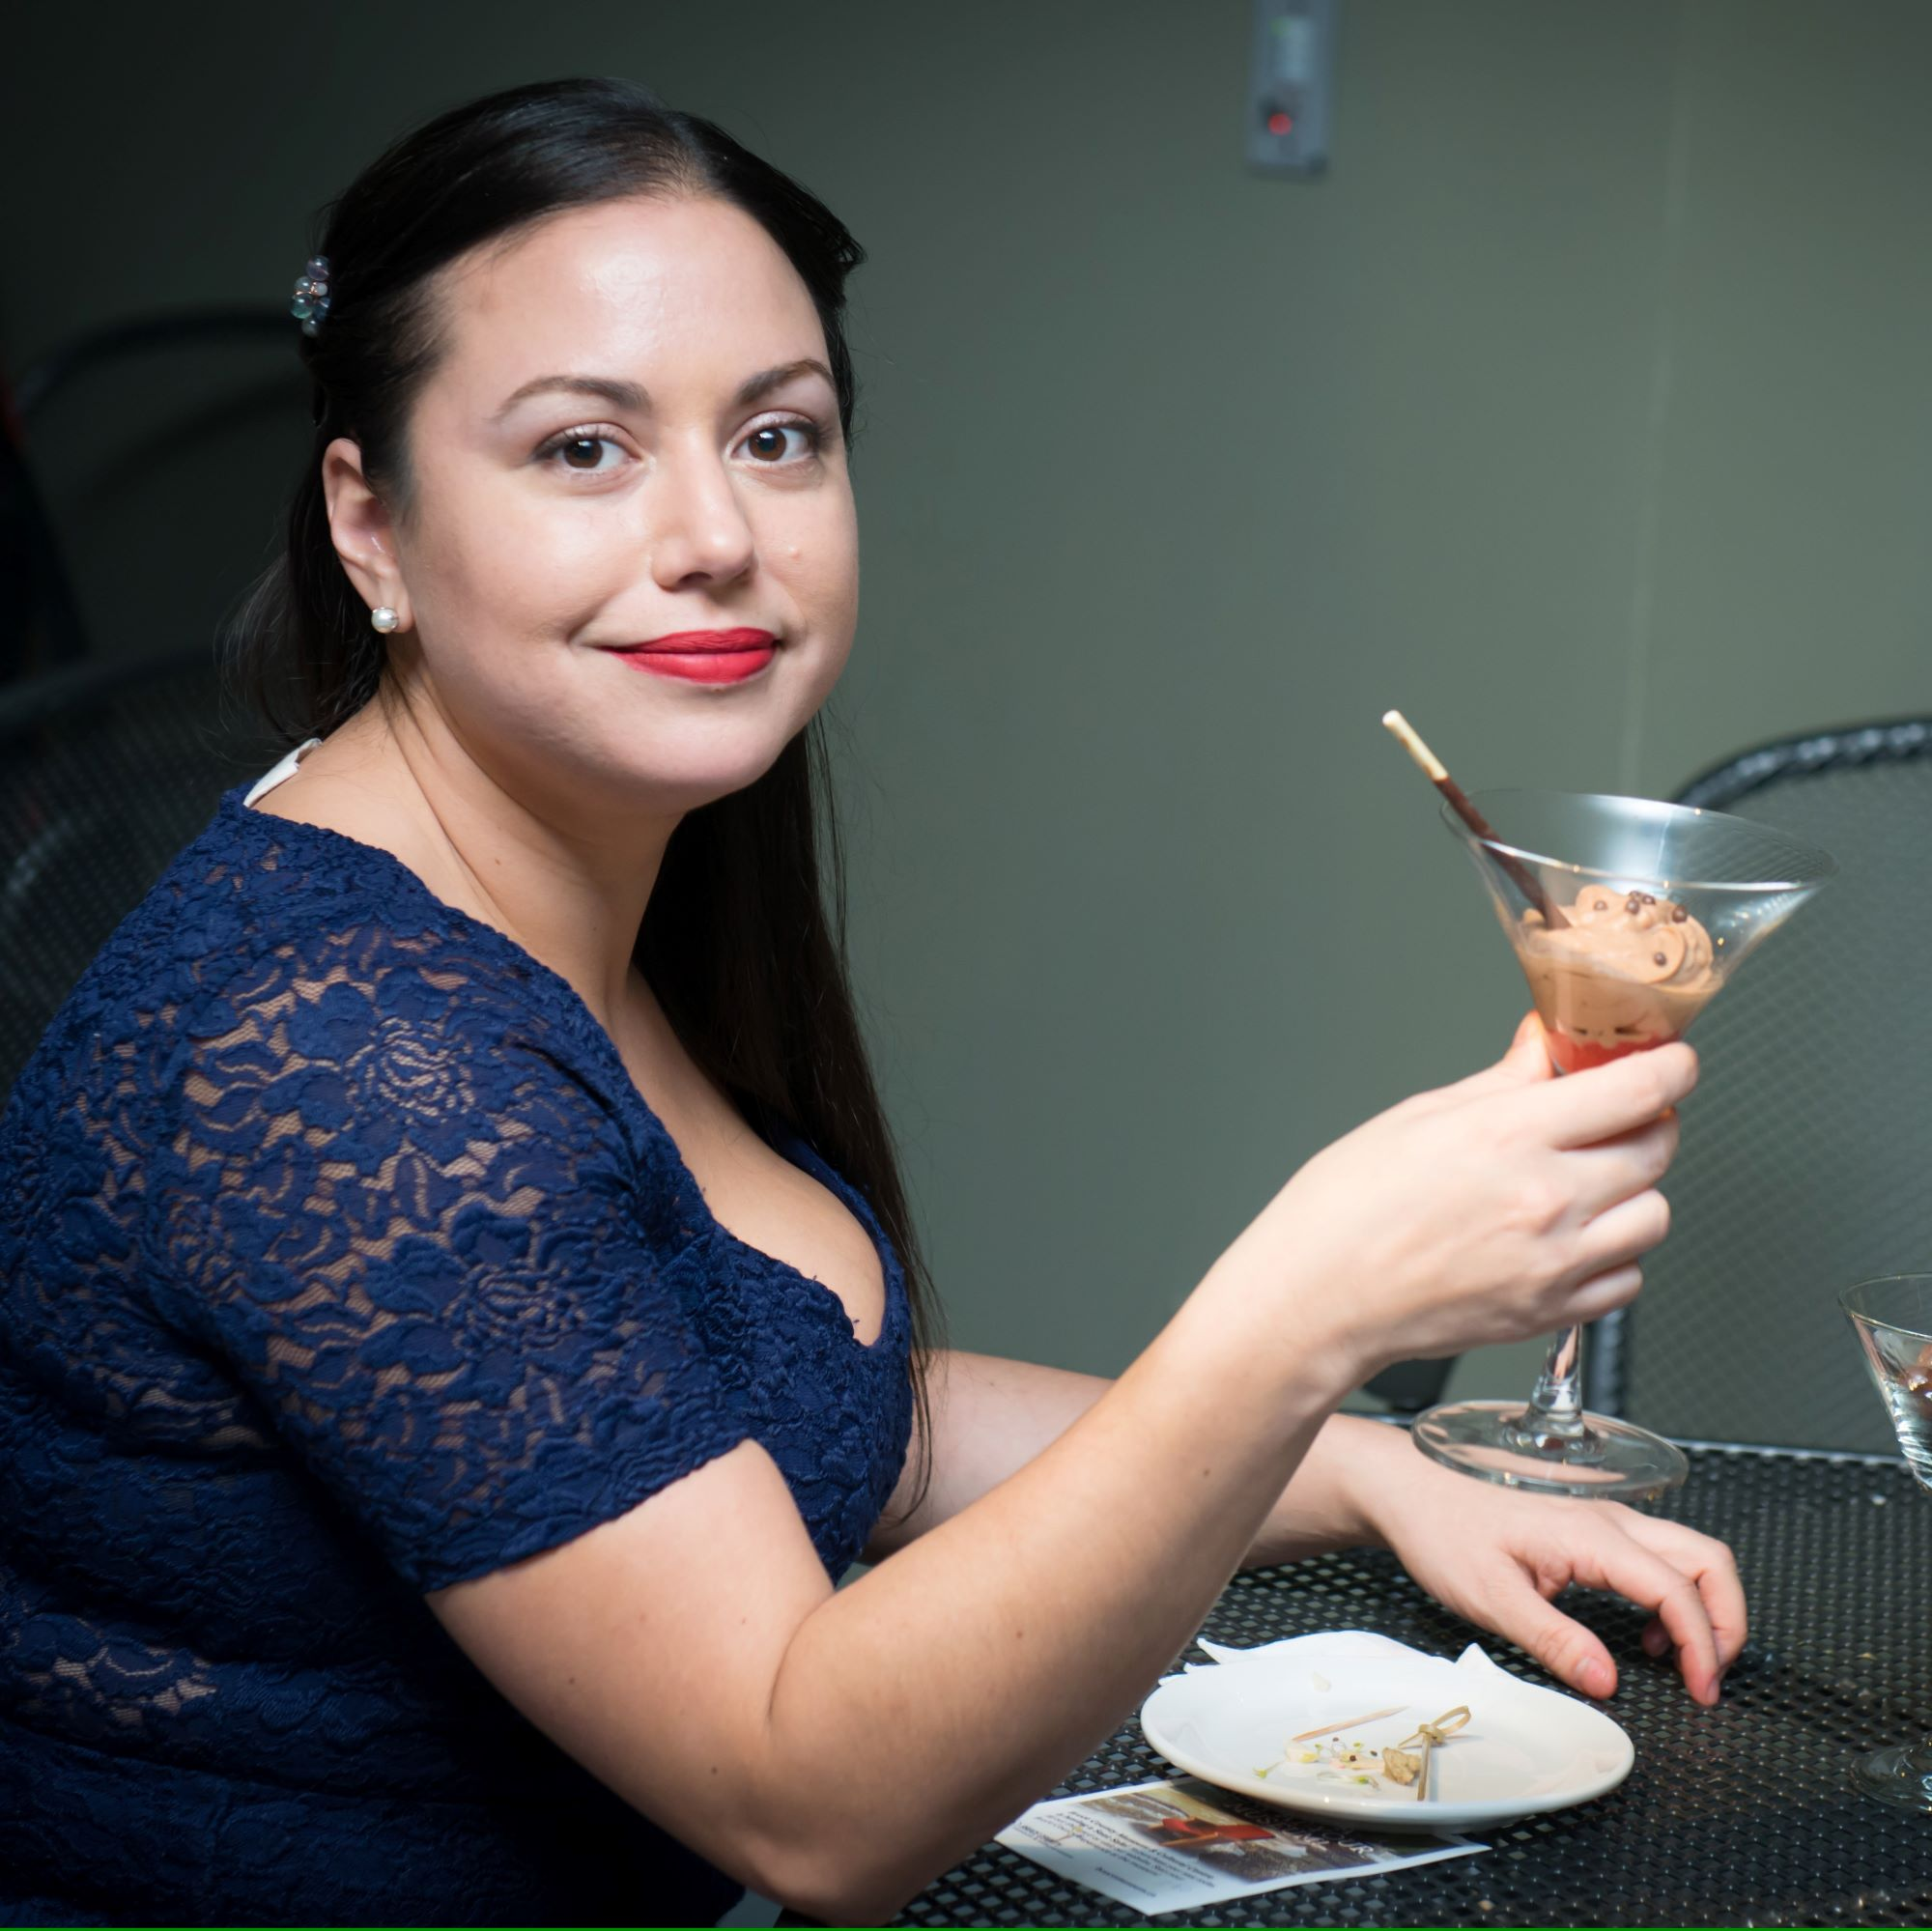 photo of woman and drink at event